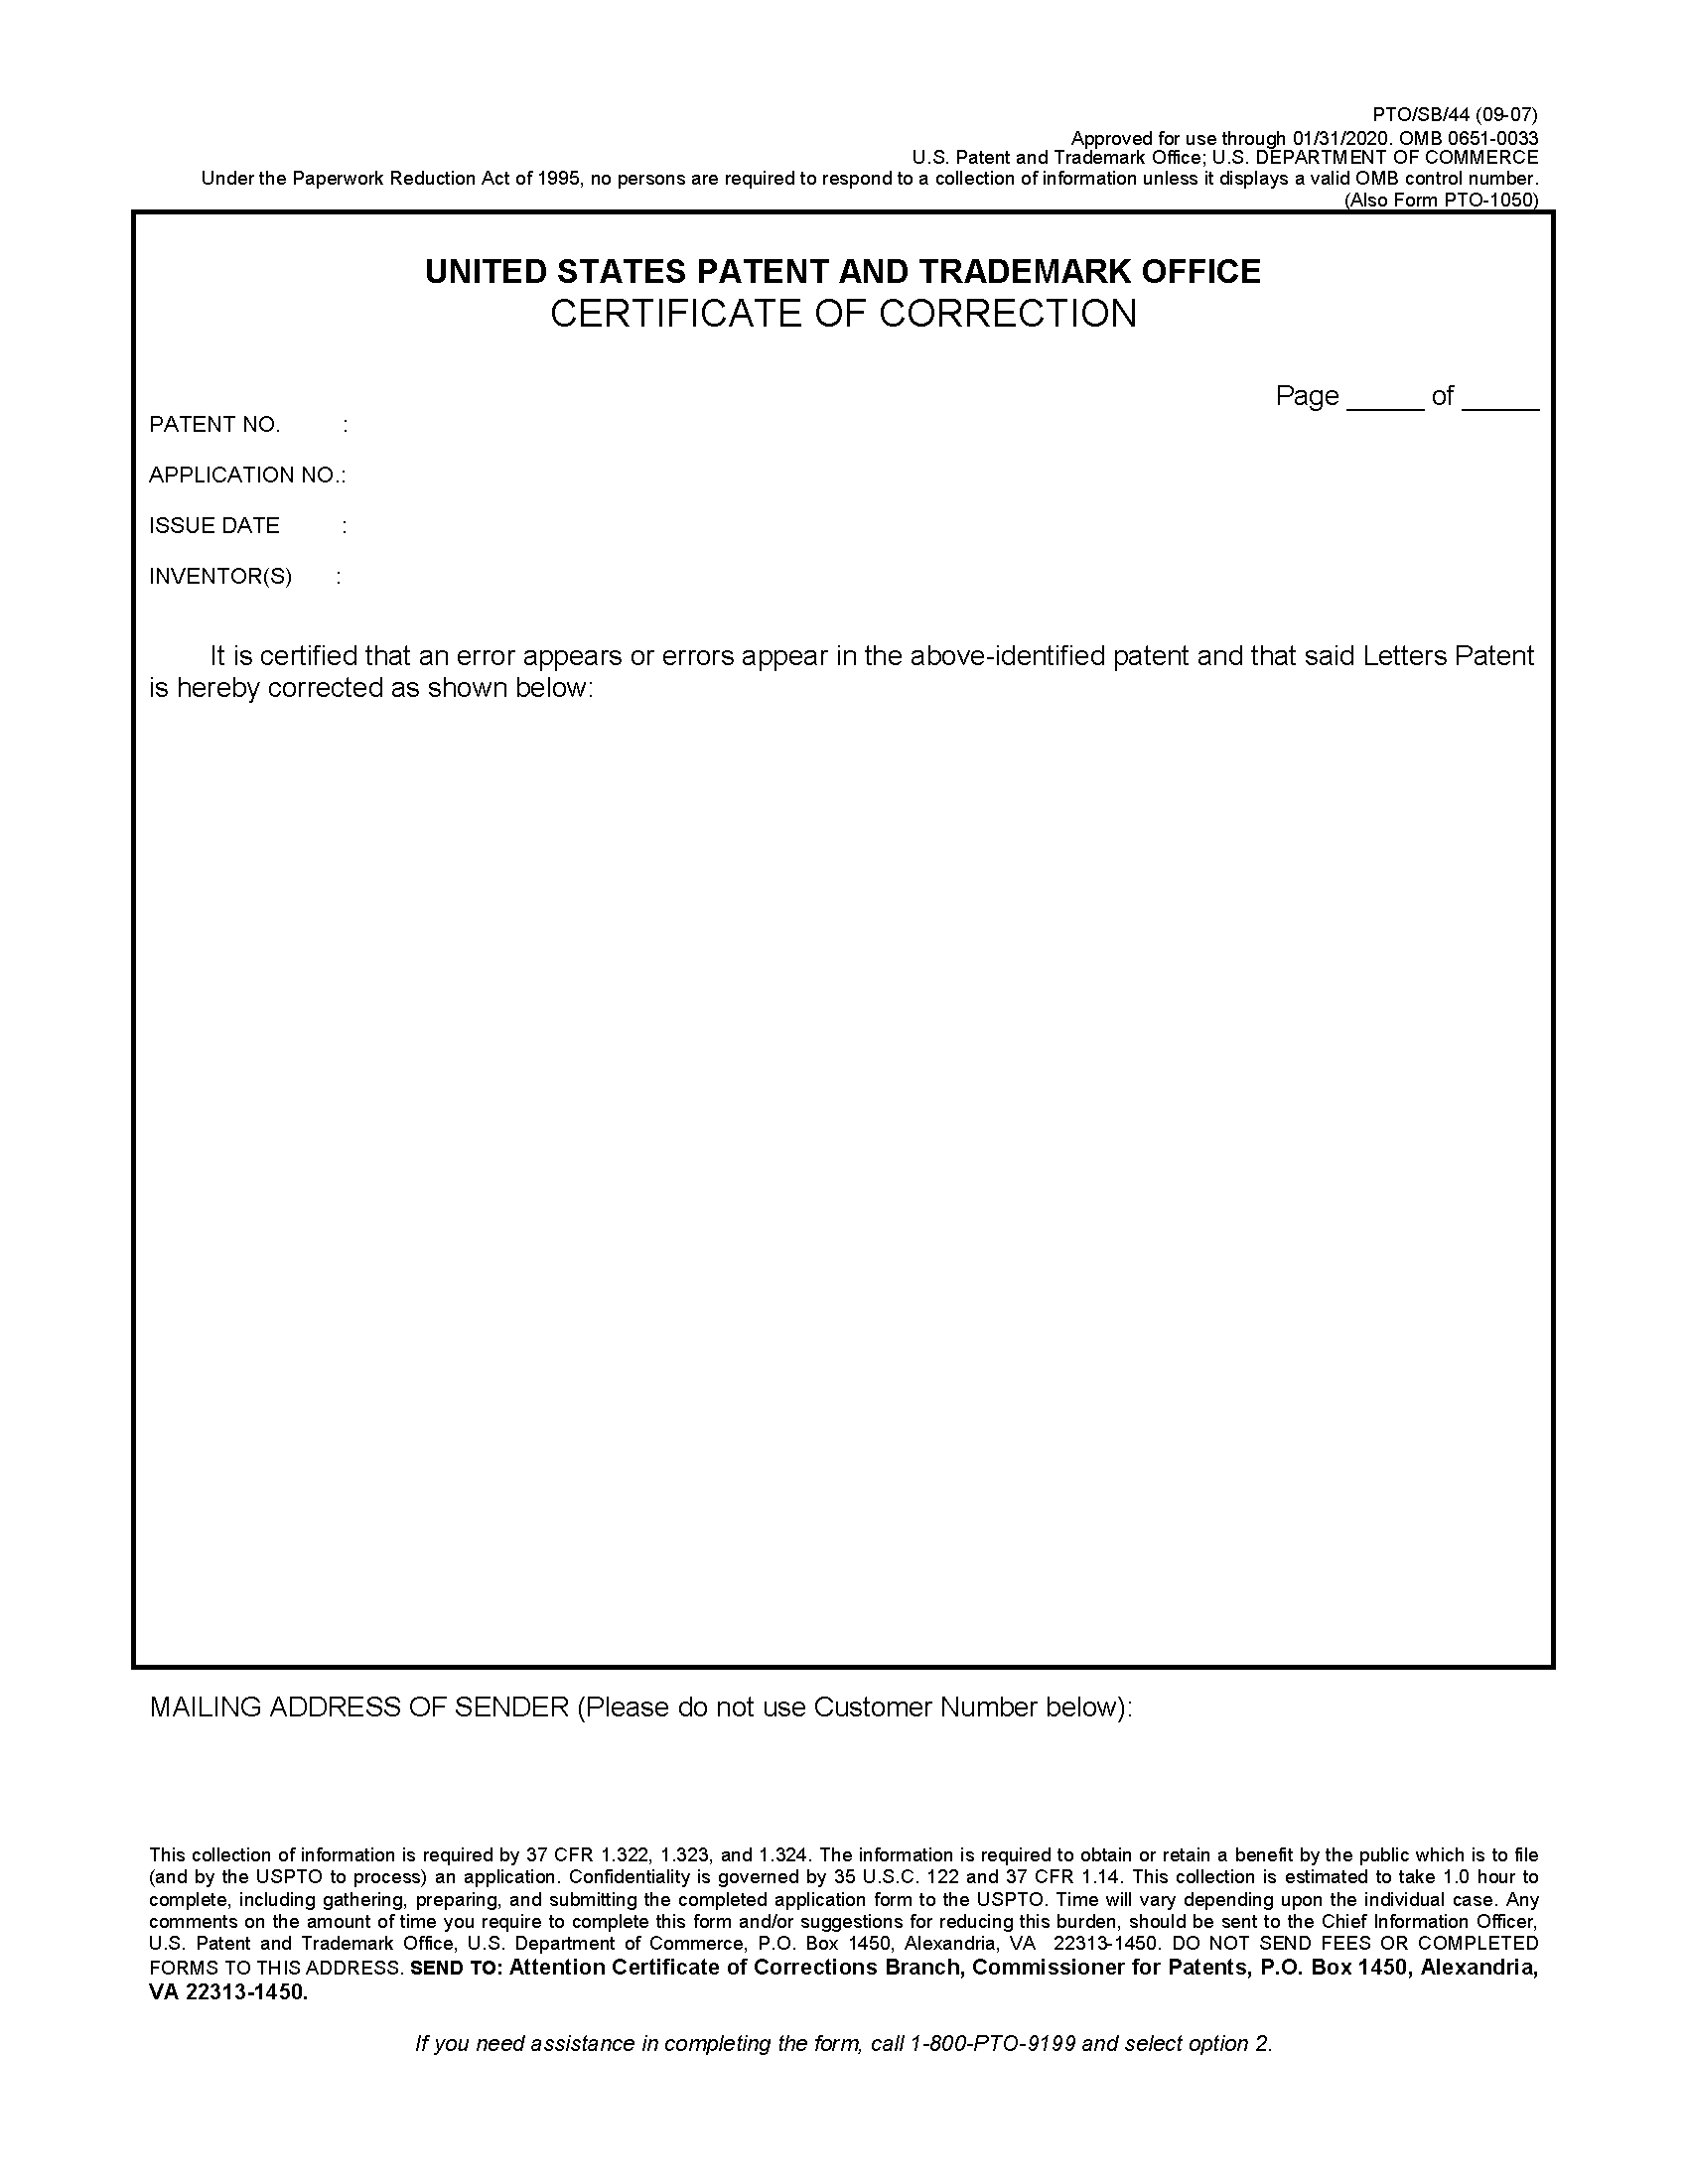 Certificate of Correction of name